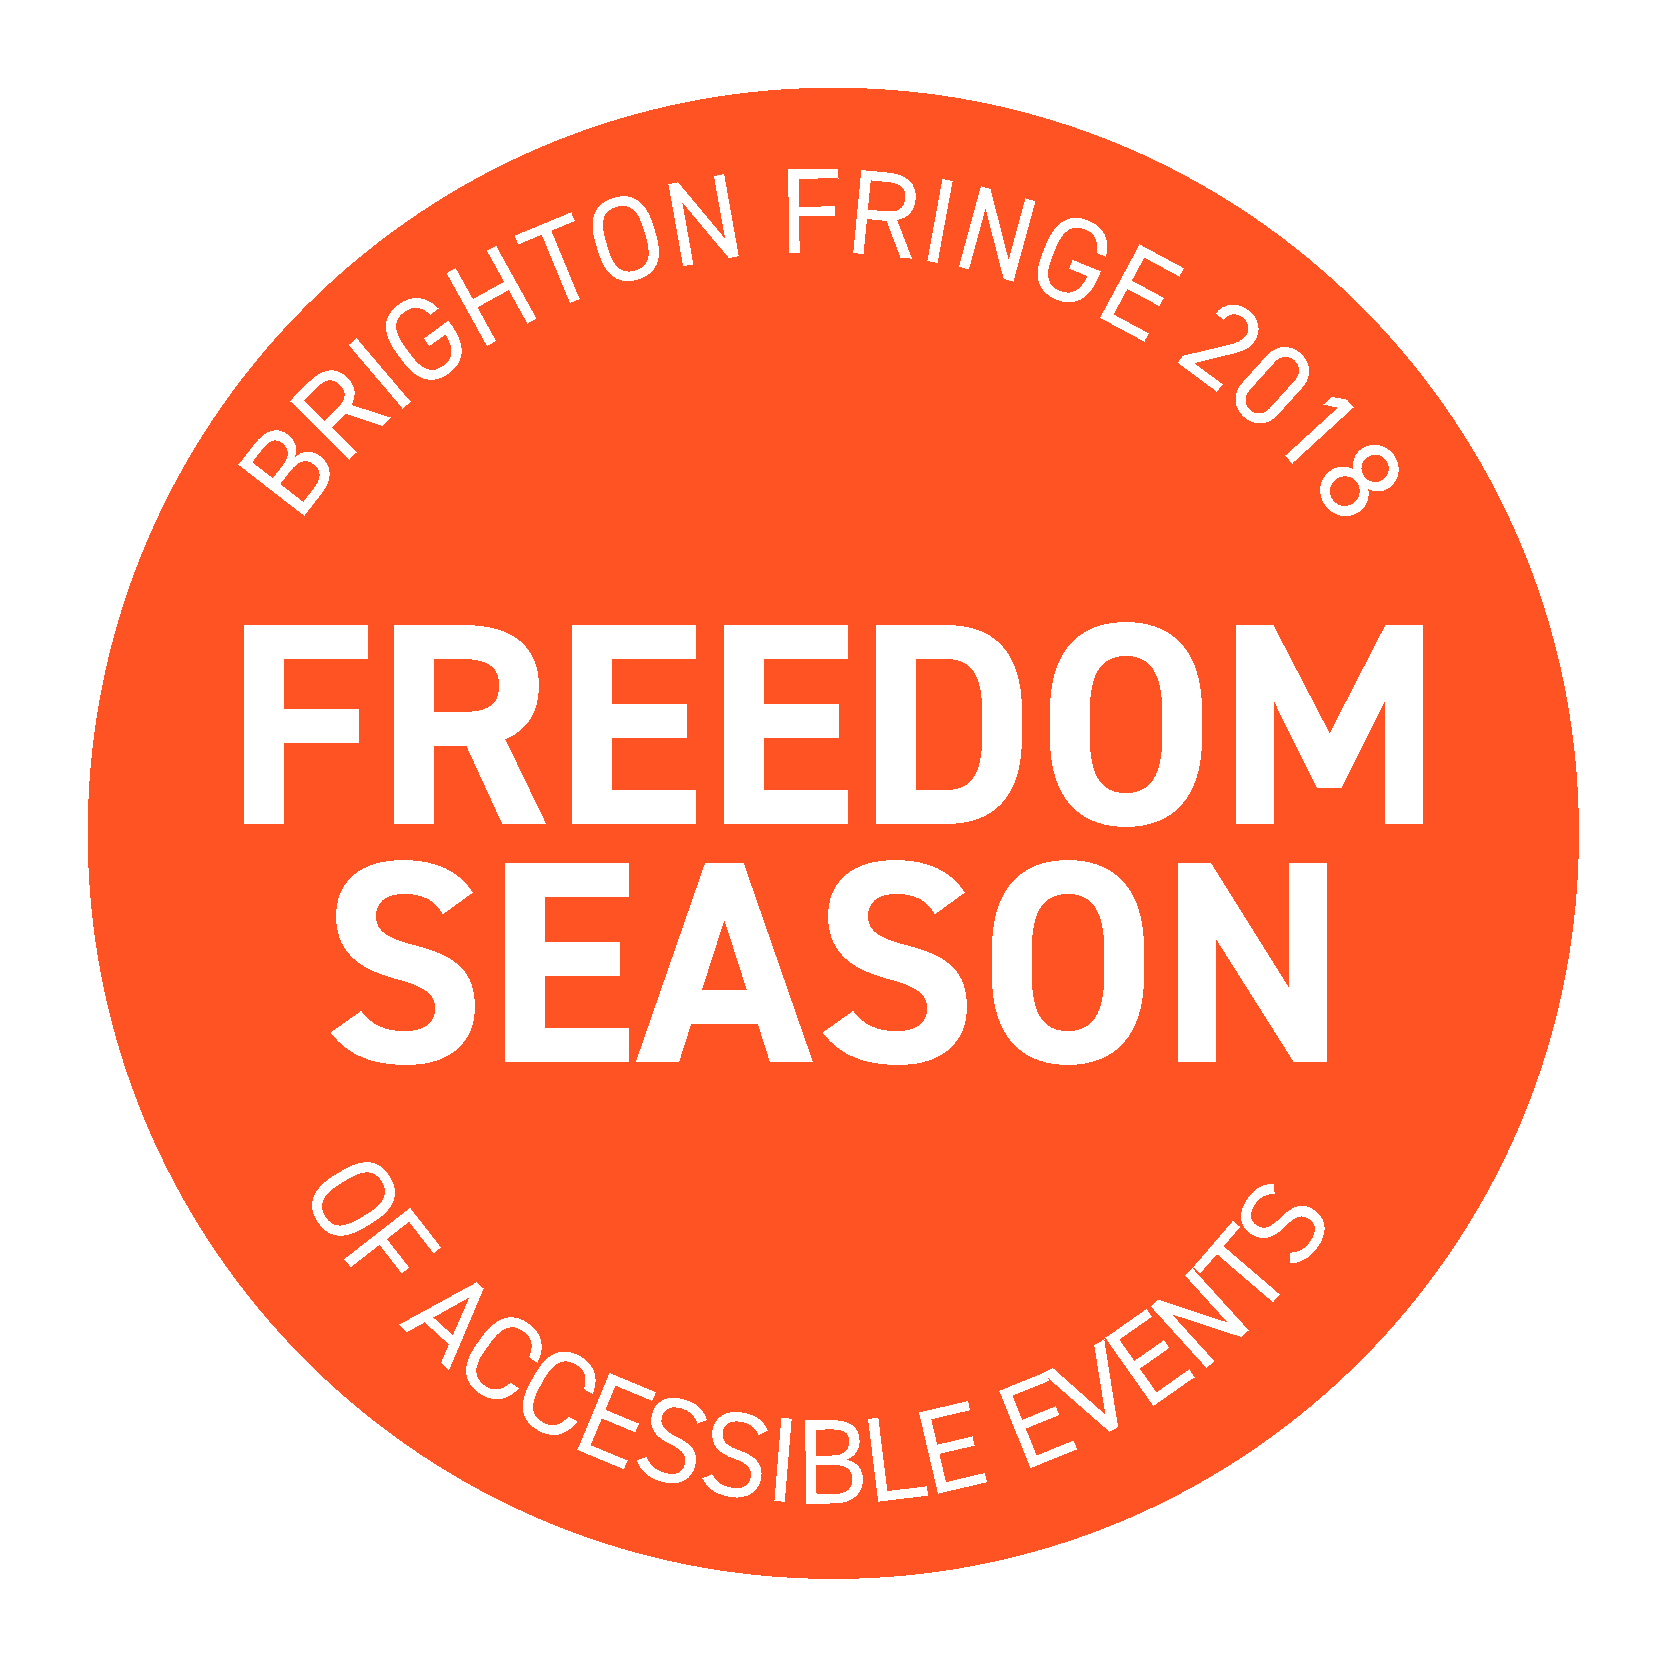 freedom season orange logo